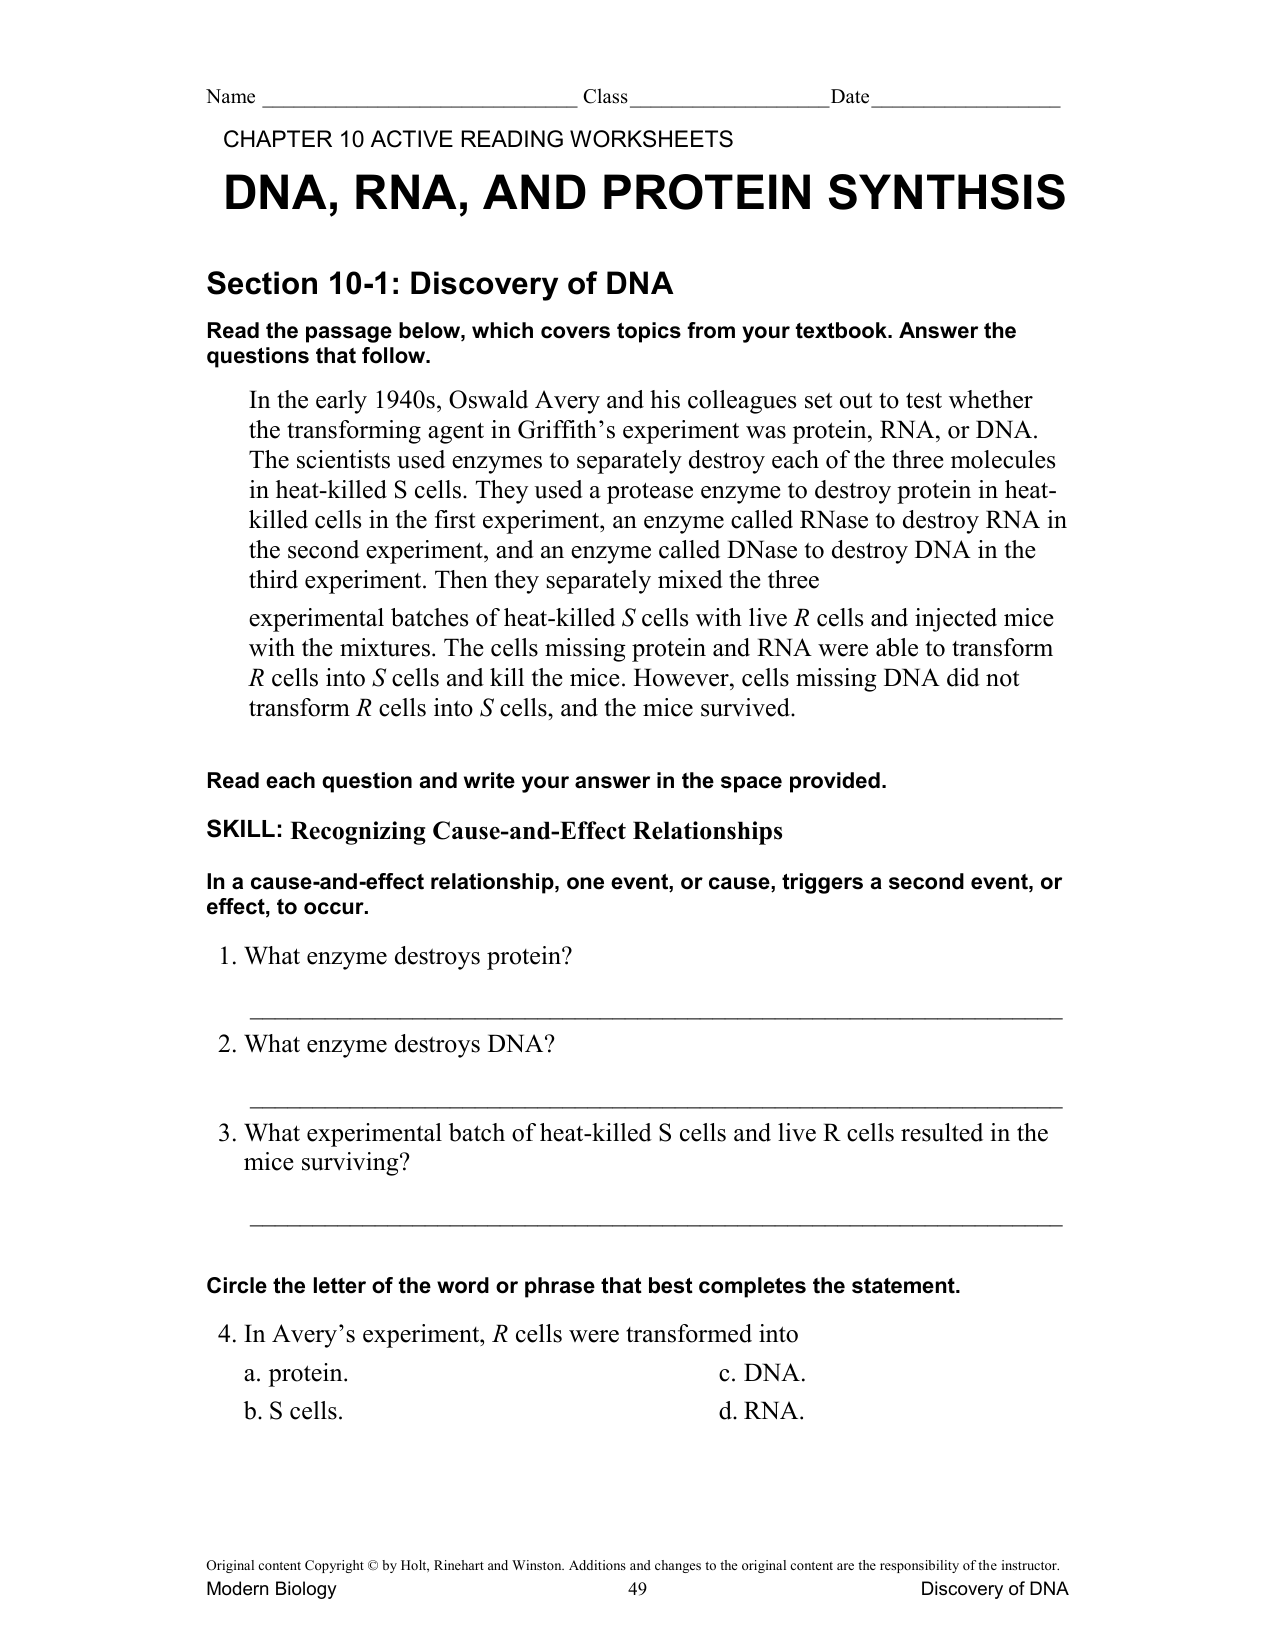 Dna Protein Synthesis Ch 10 Worksheet Answers